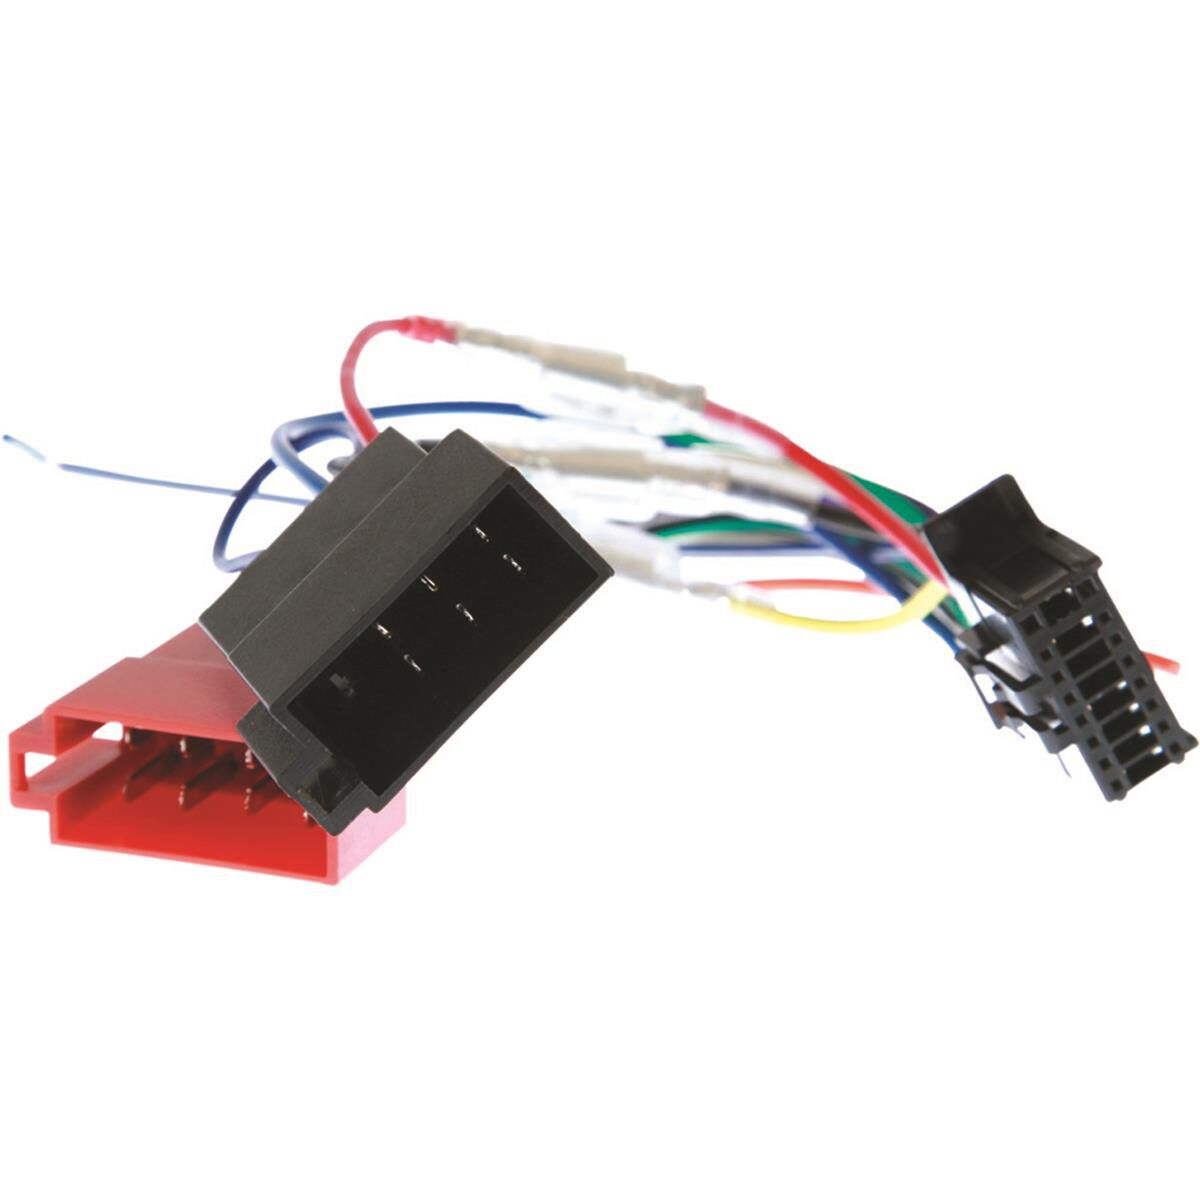 The Wiring Diagram 2 Is Not Suit For Your Item Please Check This